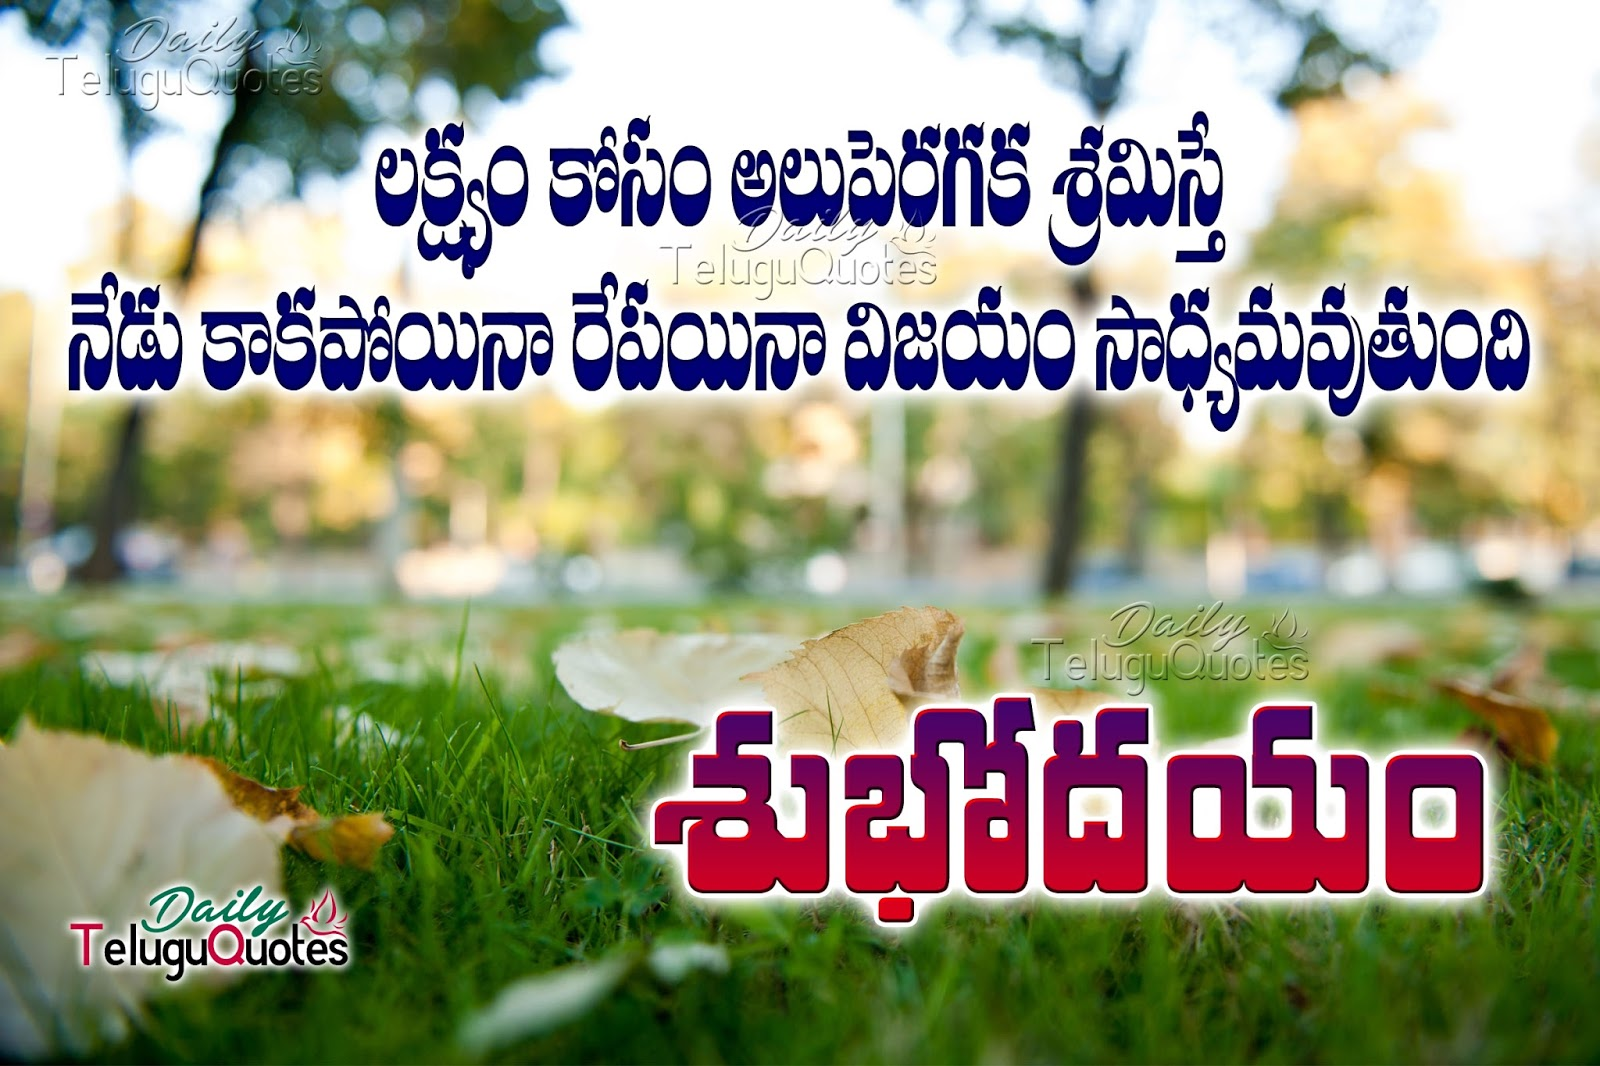 Morning Life Quotes Telugu Nice Good Morning Wallpapers With Inspiring Quotes And